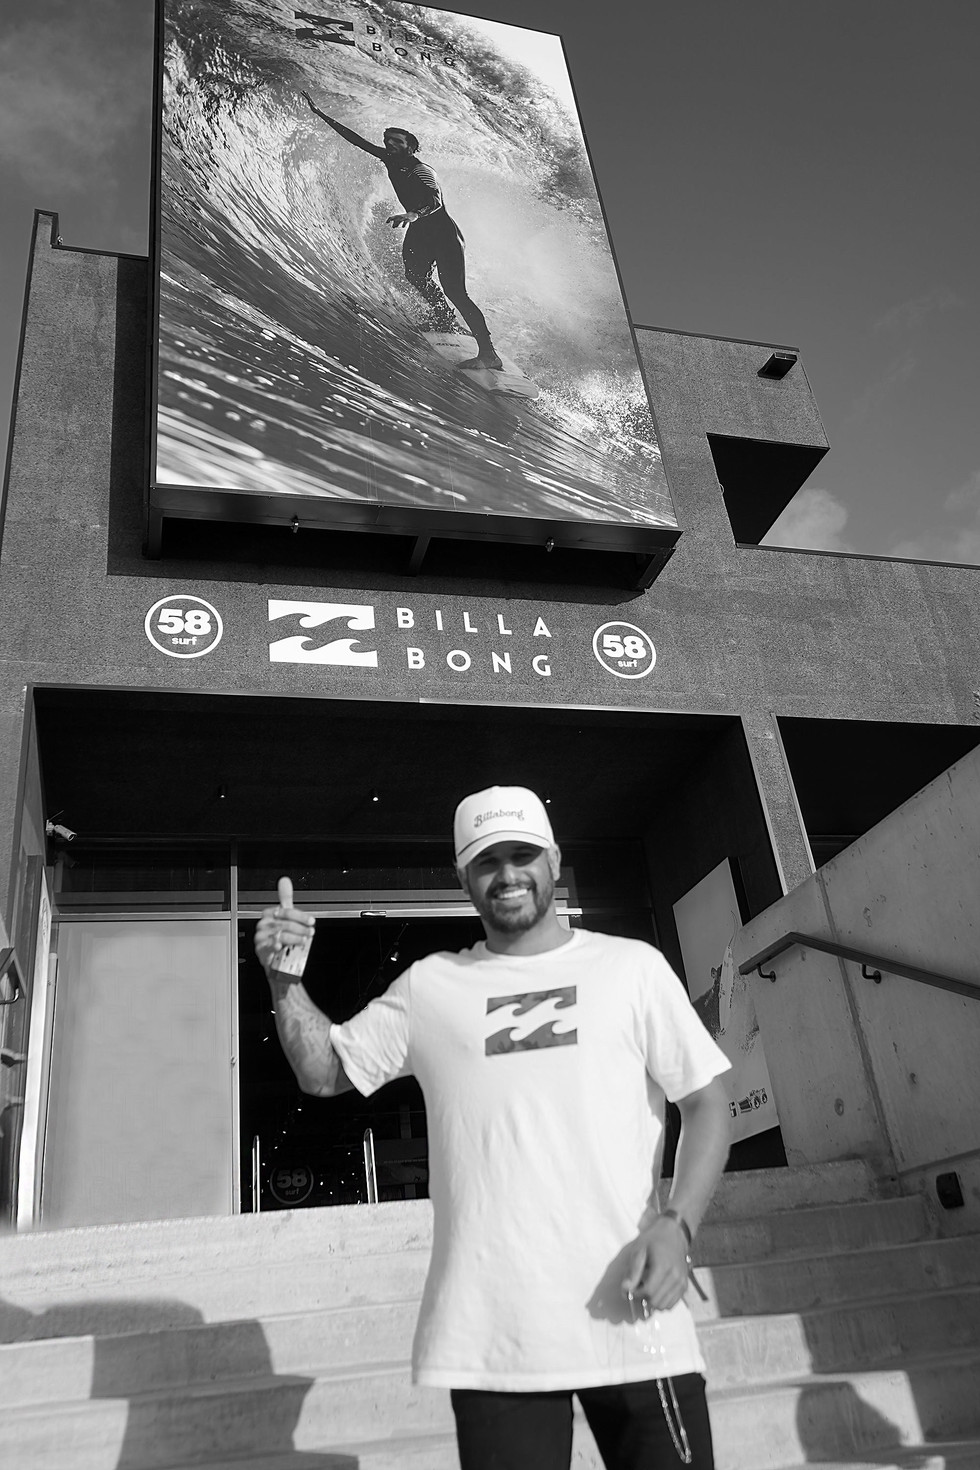 Timmy & Italo Do Shapers Day Together In Portugal At 58 Surf Shop